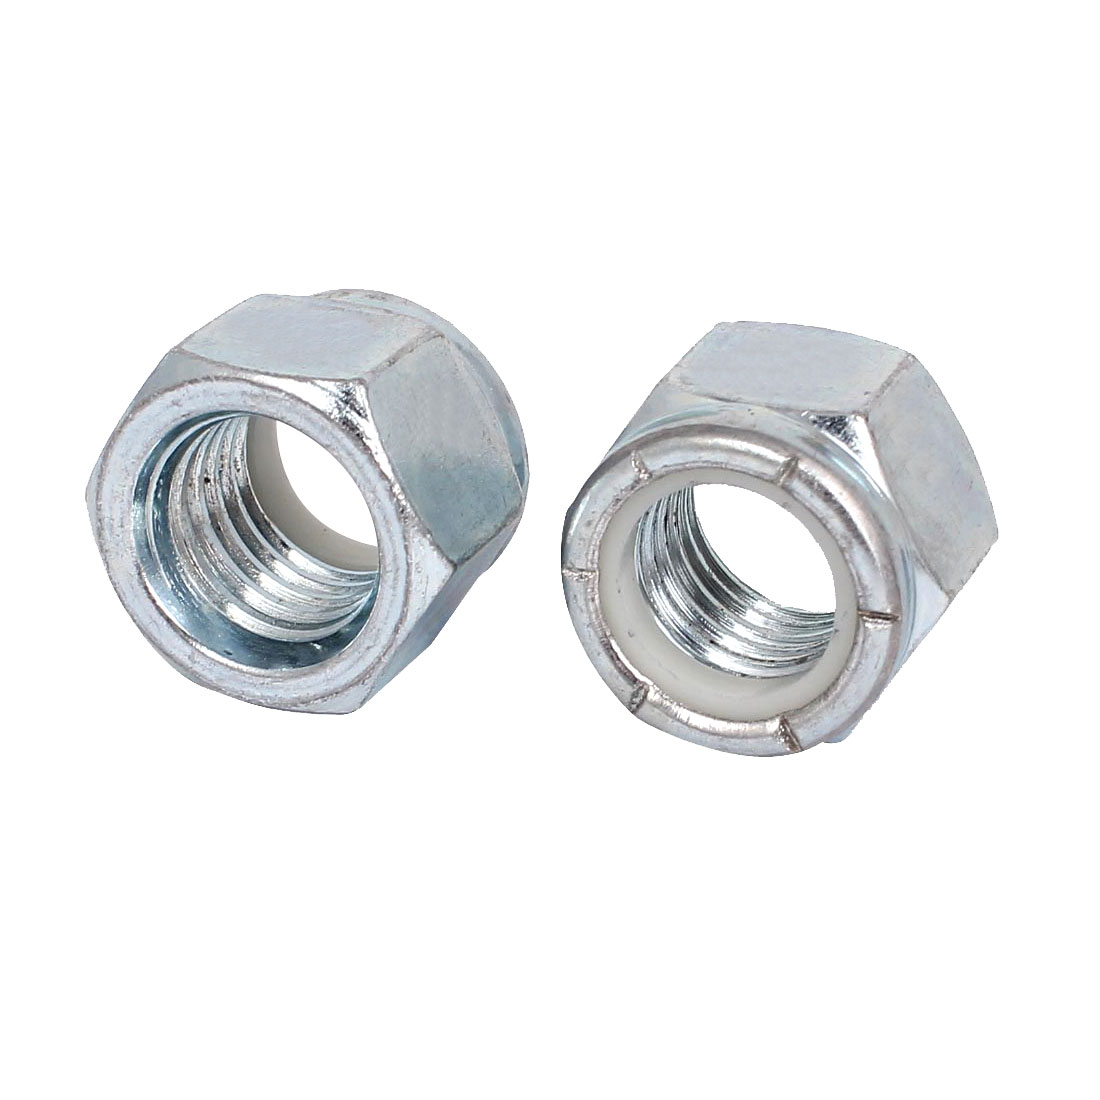 "2pcs Zinc Plated Nylock Self-Locking Nylon Insert Hex Lock Nuts 3/4""-10"